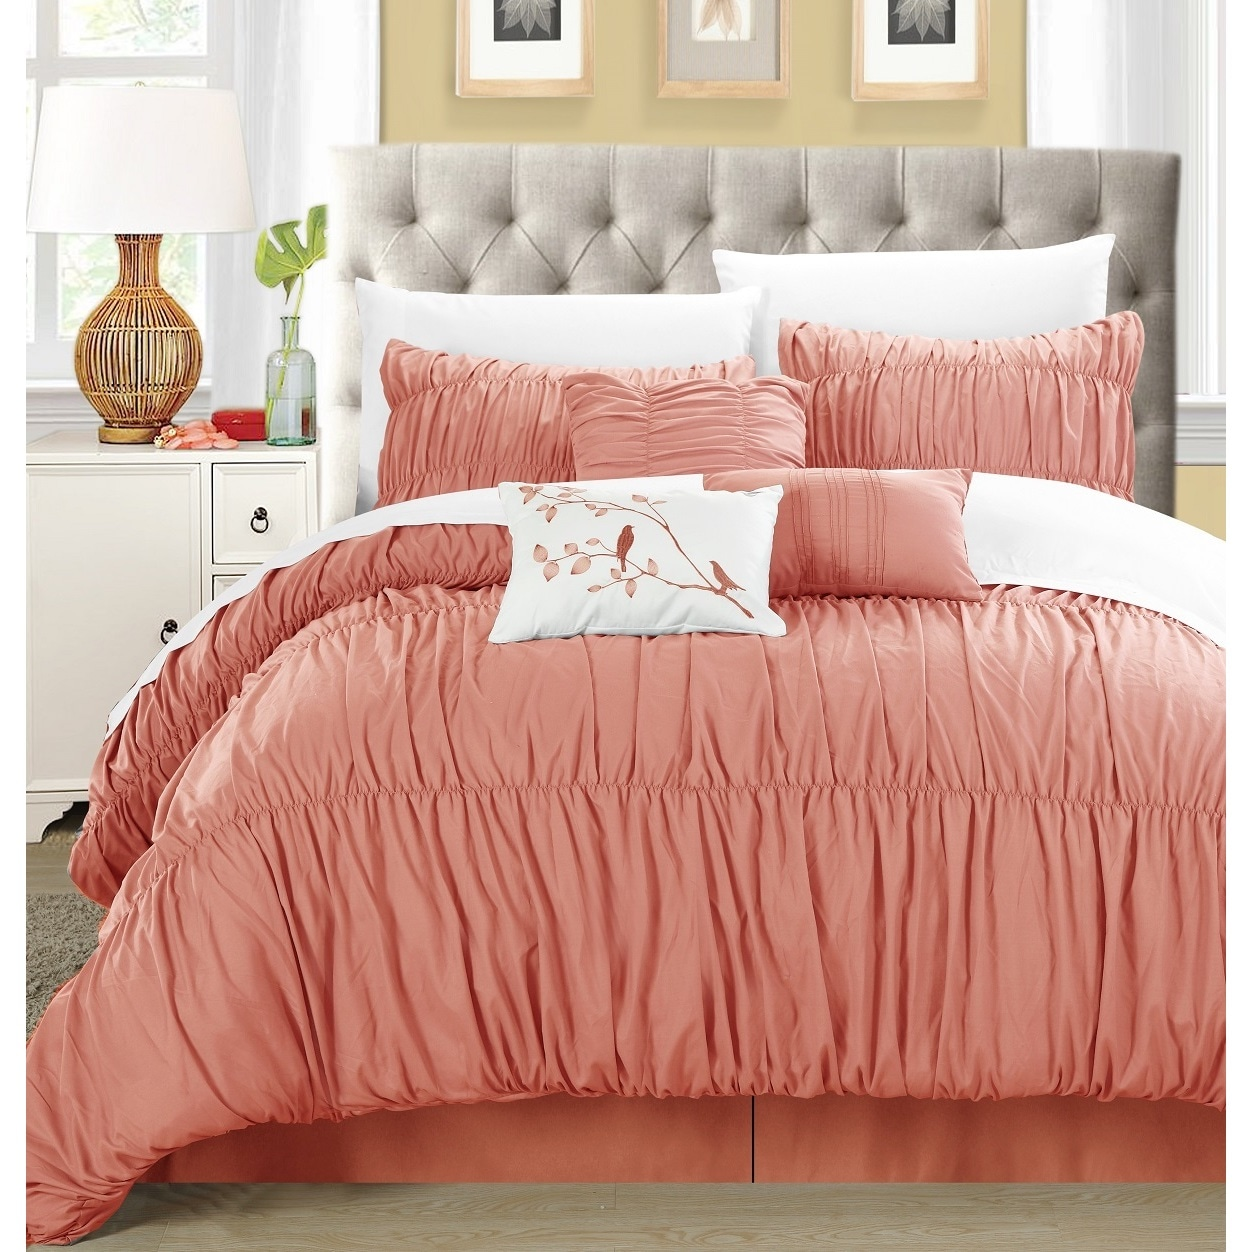 bedspreads brown teal twin set bedroom duvet or and pink comforter terrific turquoise blue bedding sets peach comforters navy